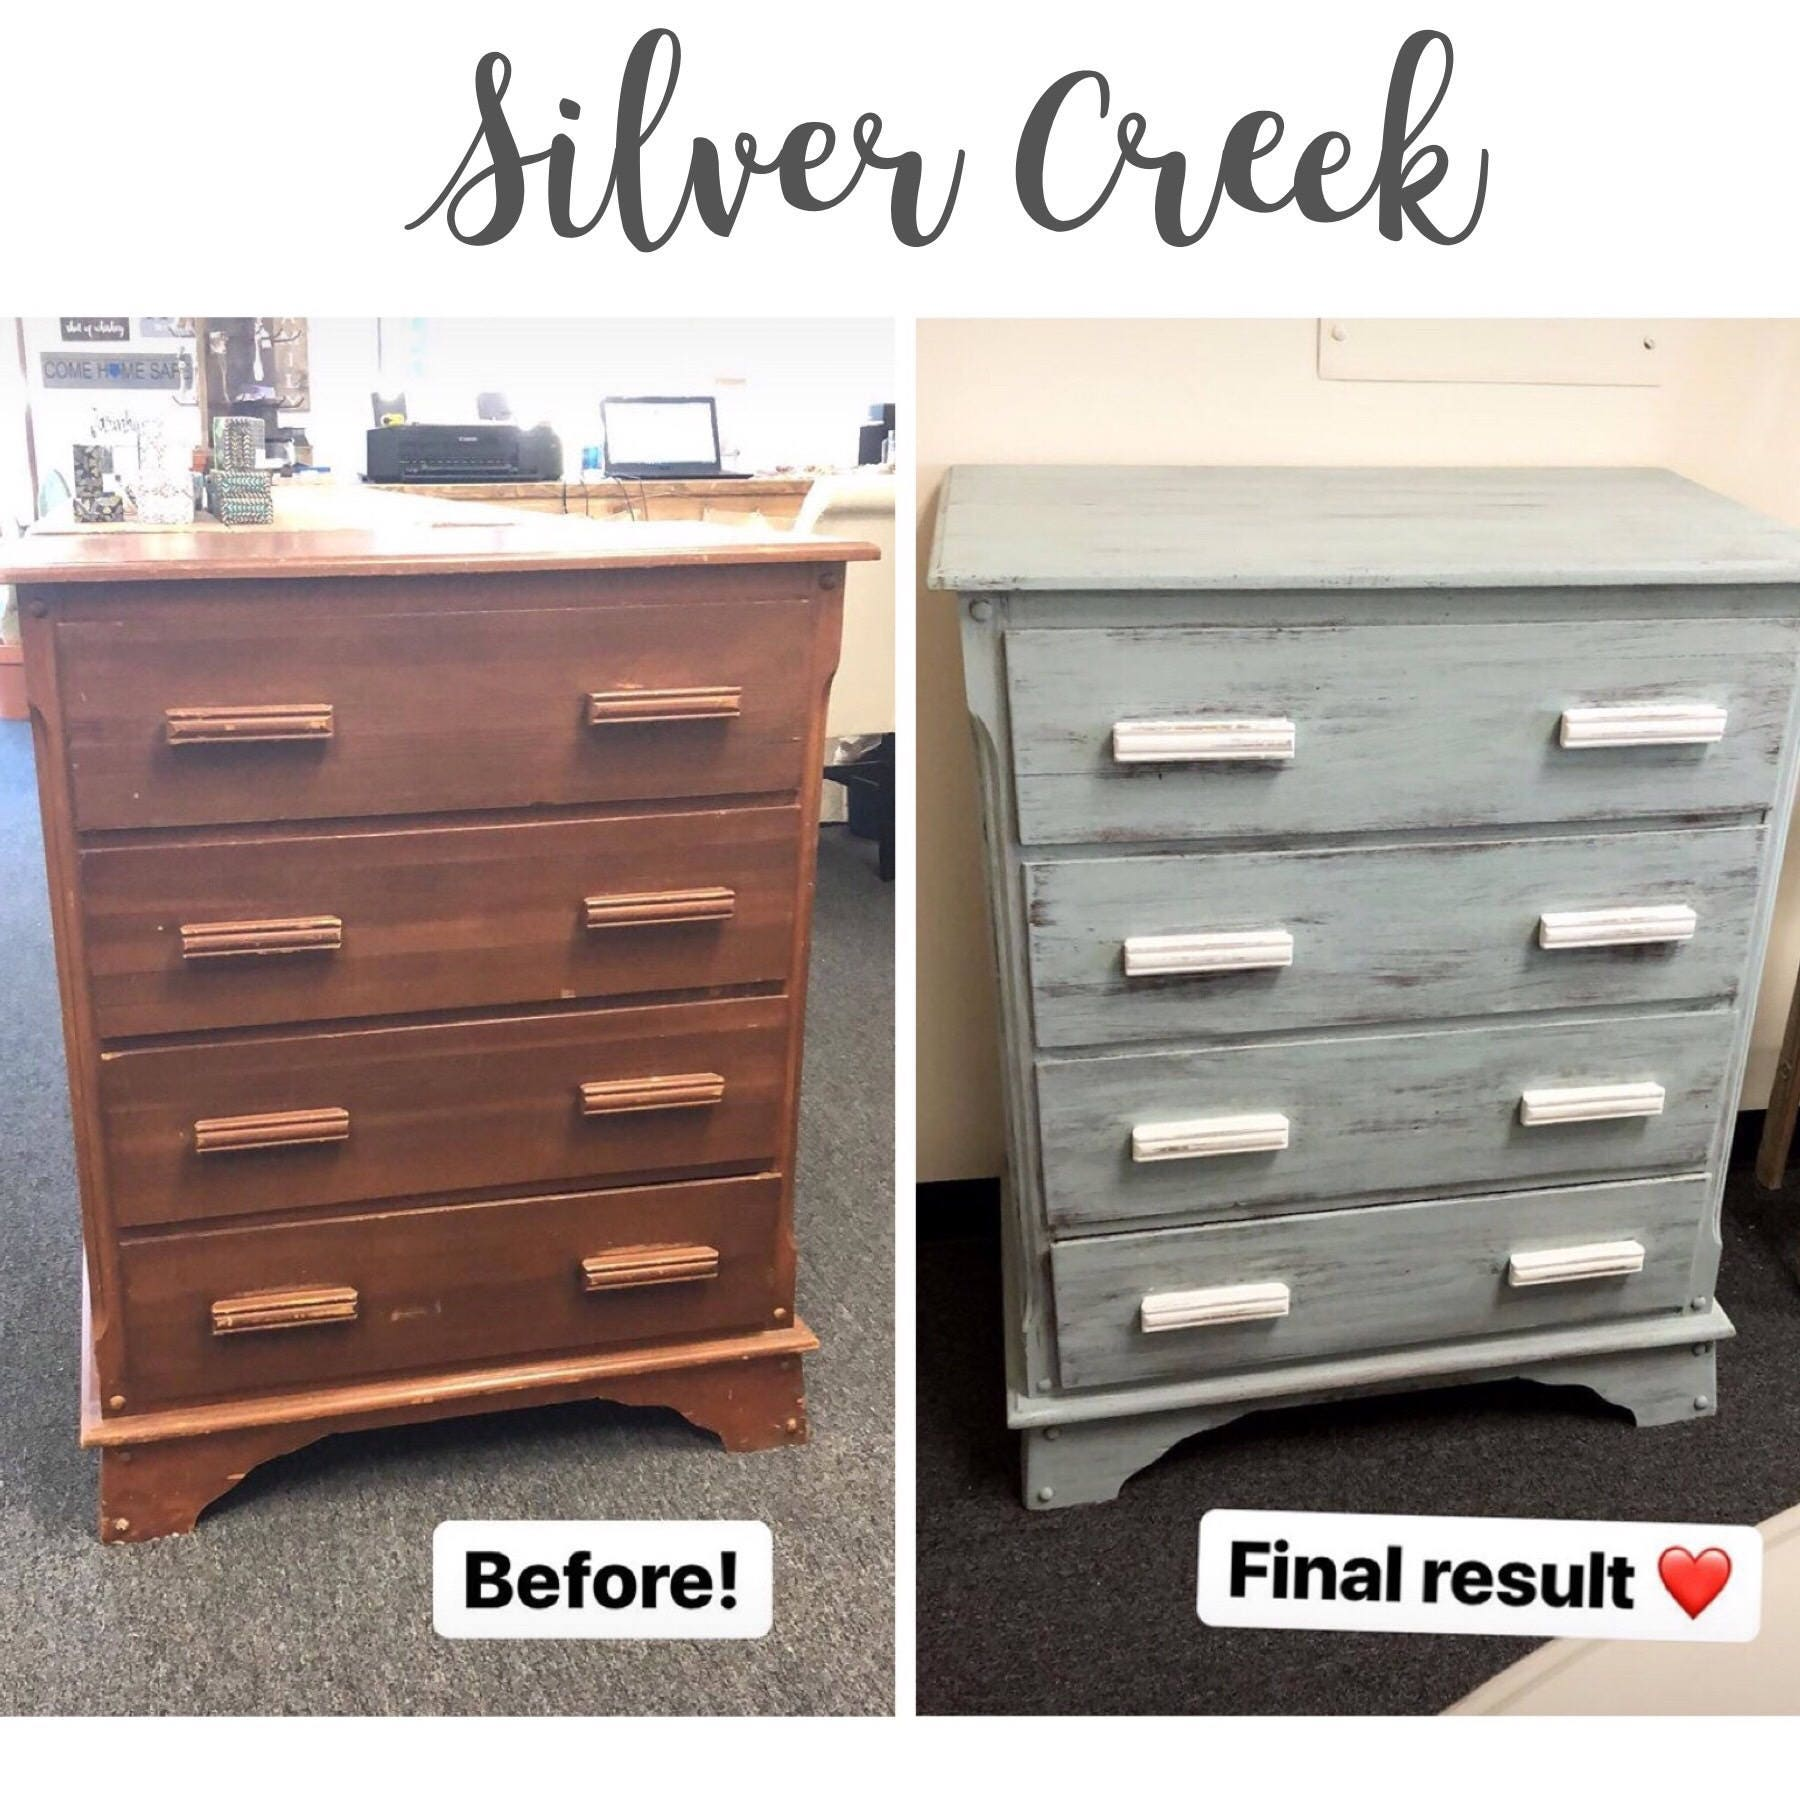 Silver Creek Chalk Paint, Premium Furniture Paint, Many Color Options,  Antique Finish, Vintage, Shabby Chic Paint,Non Toxic Decorative Paint